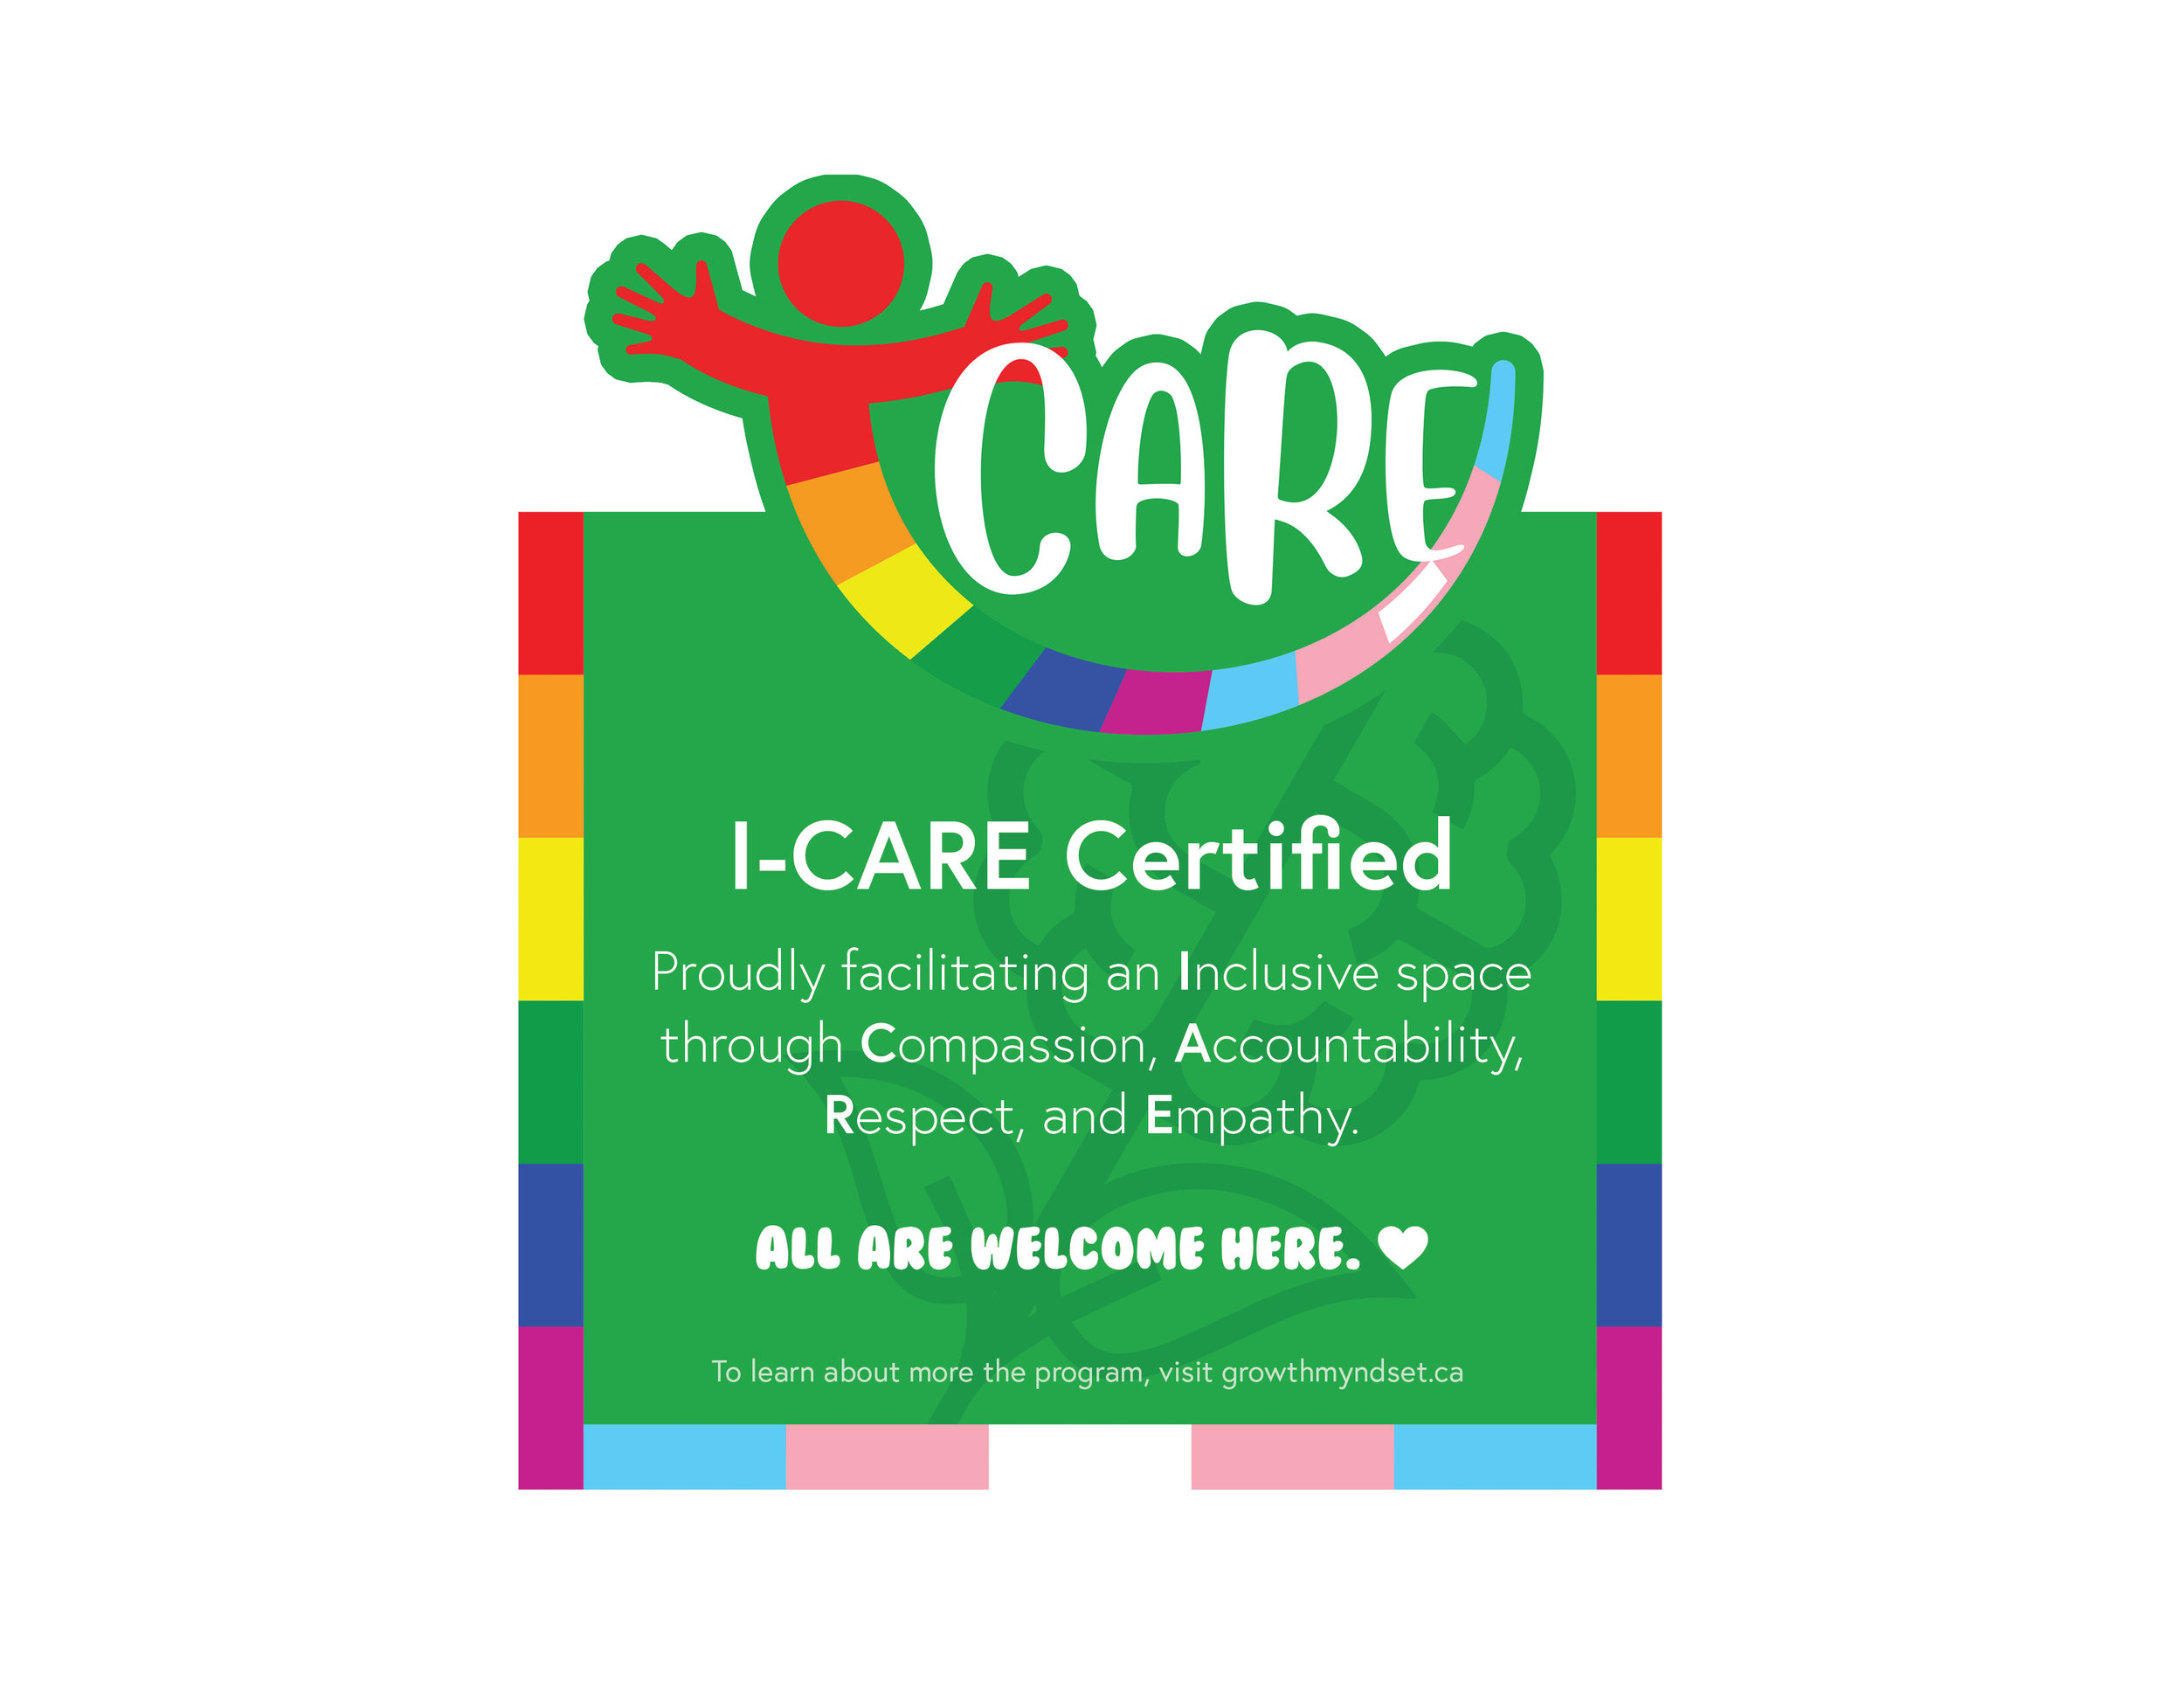 I-CARE-sticker-mar10-7.jpeg